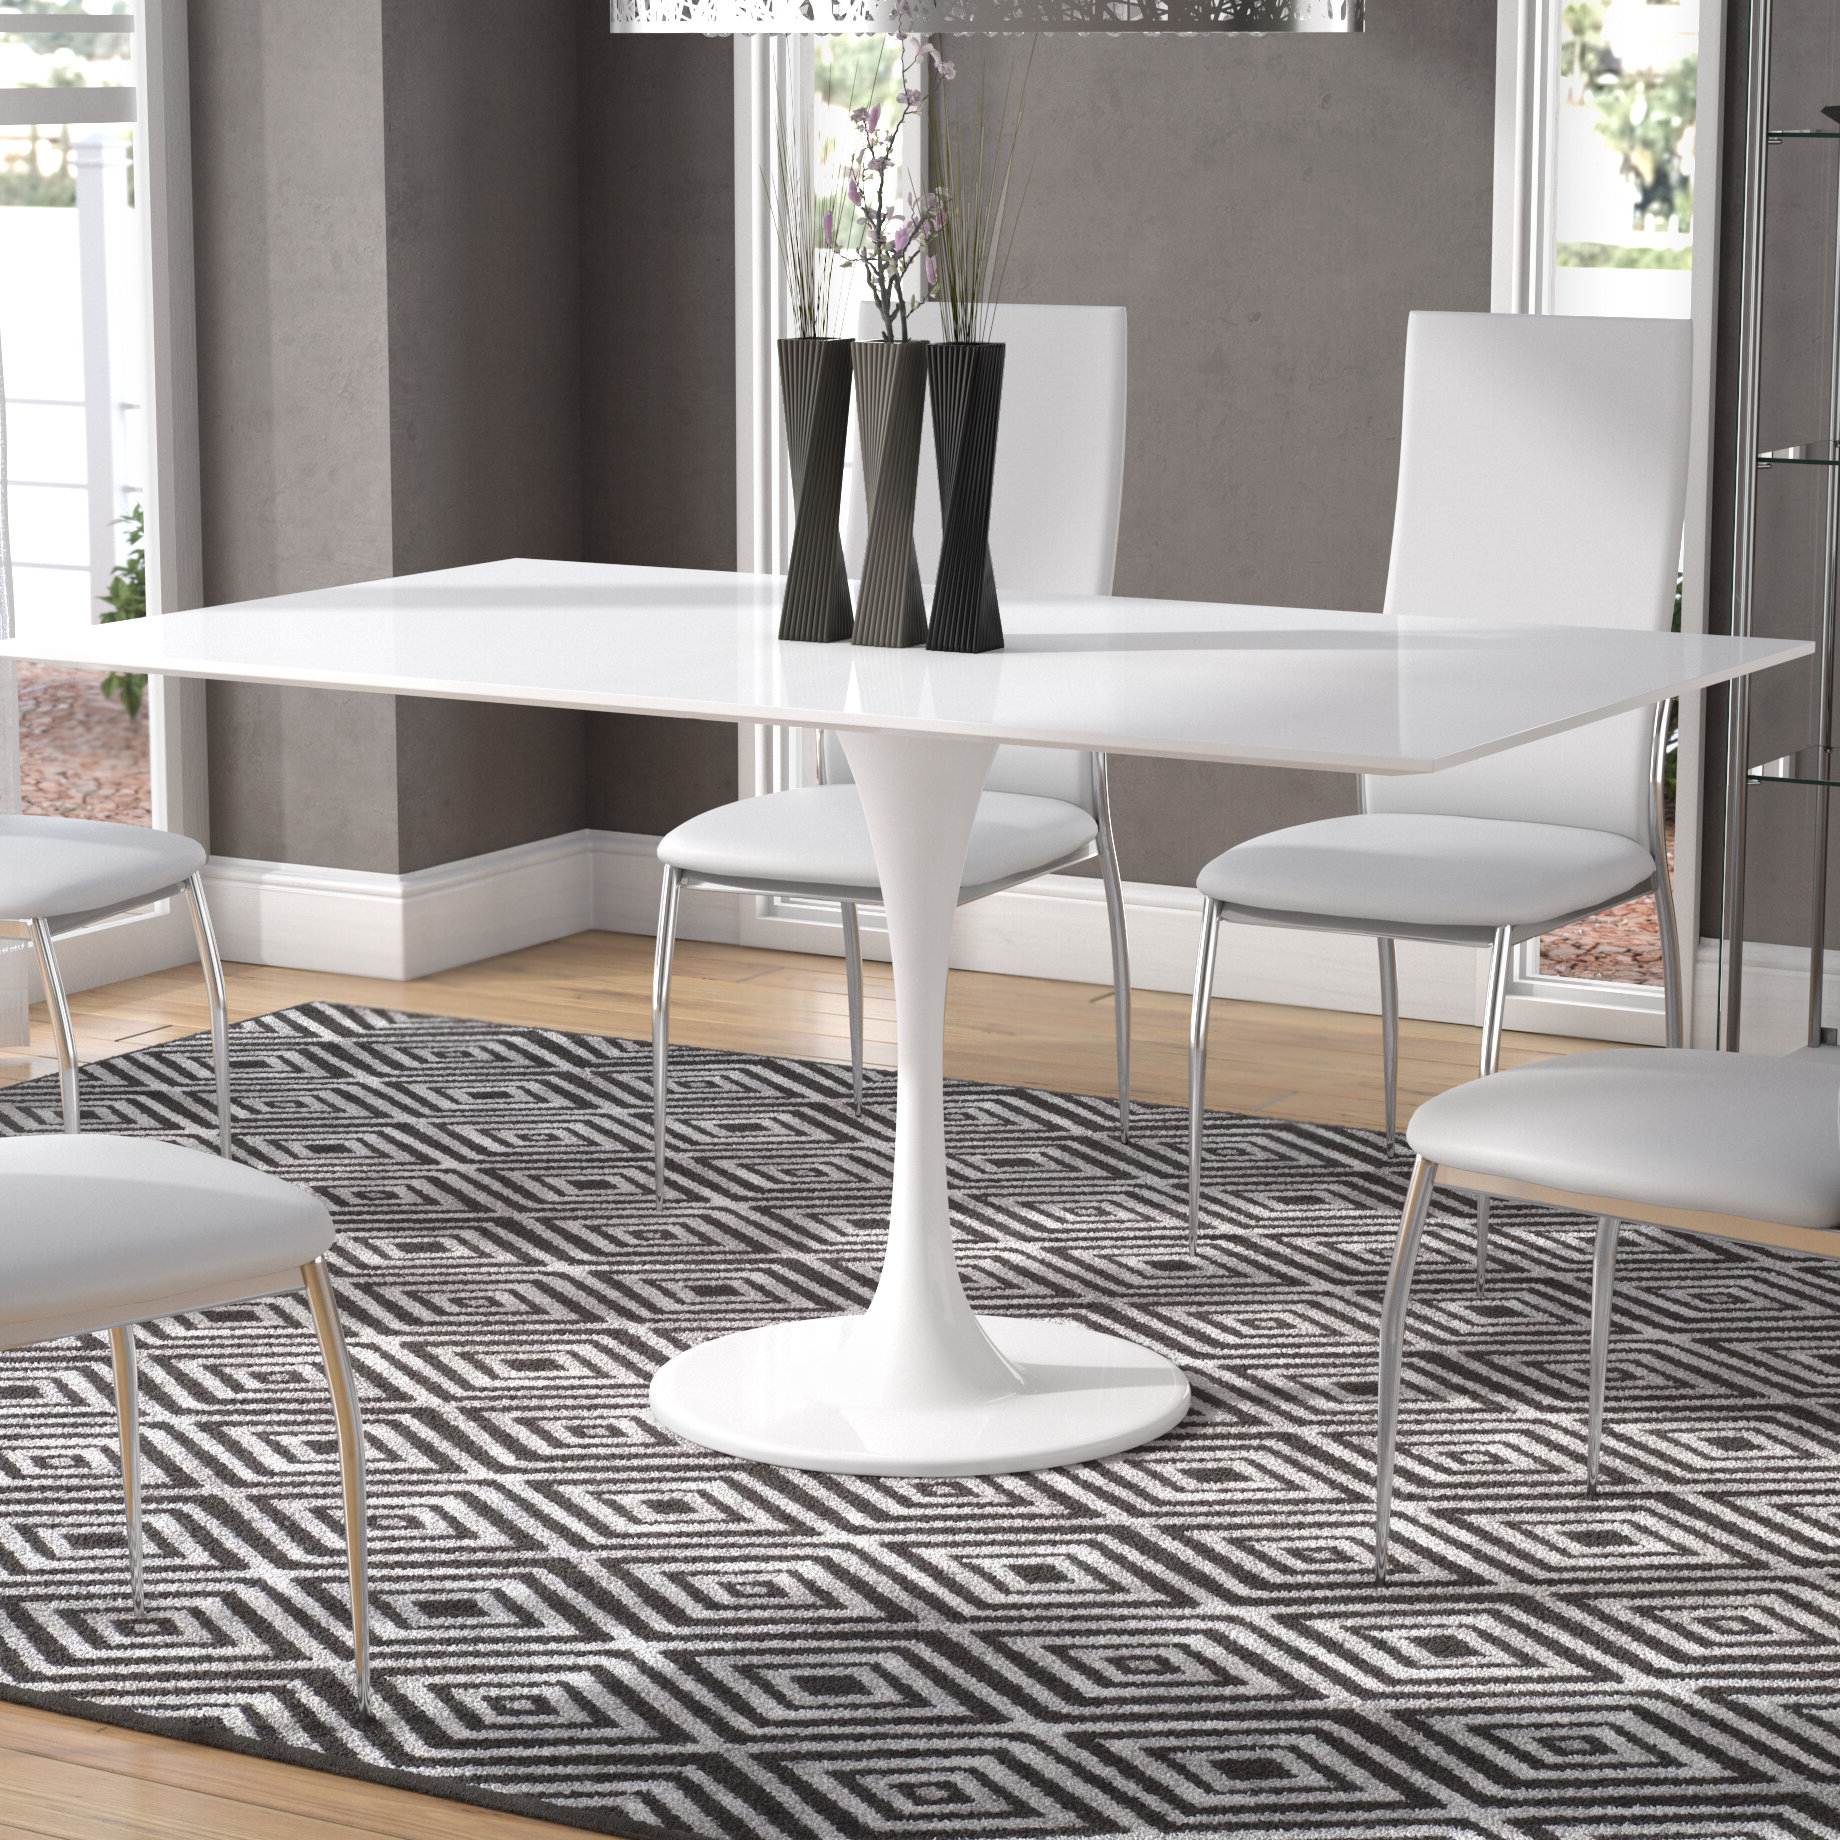 Well Liked Julien Contemporary Rectangular Dining Table Regarding Contemporary Rectangular Dining Tables (View 7 of 25)